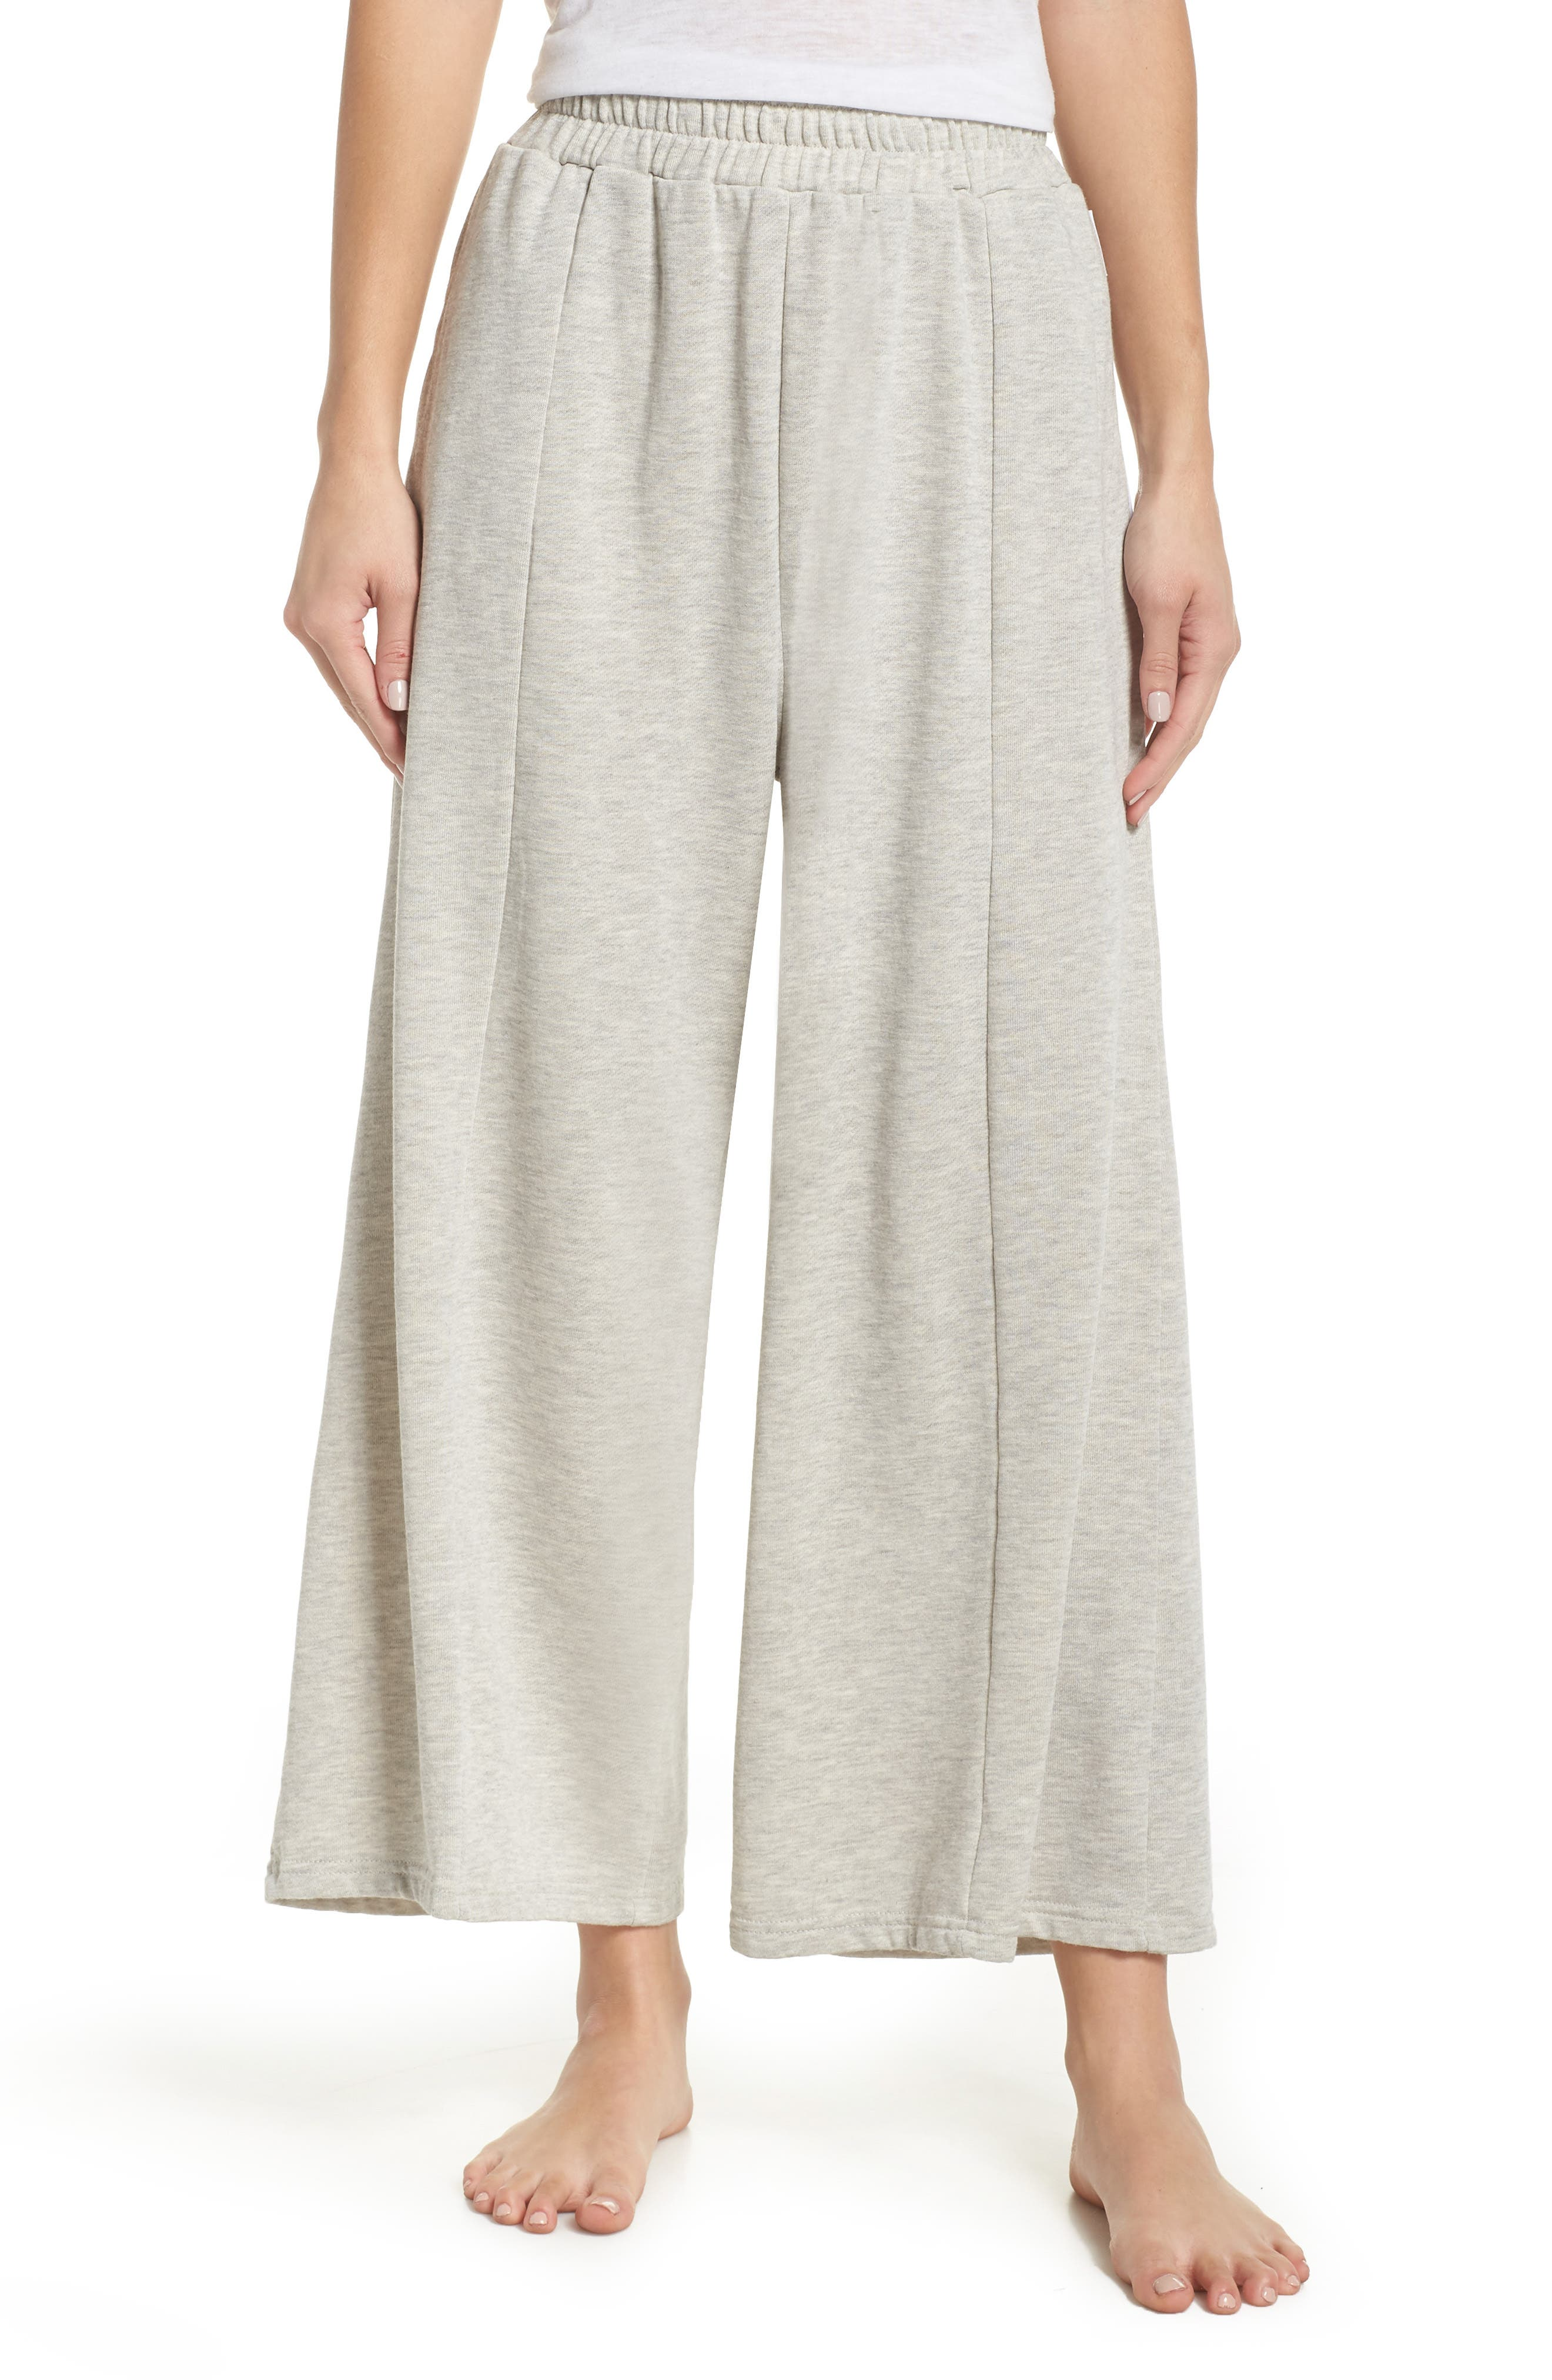 THE LAUNDRY ROOM Flare Leg Crop Pants in Pebble Heather